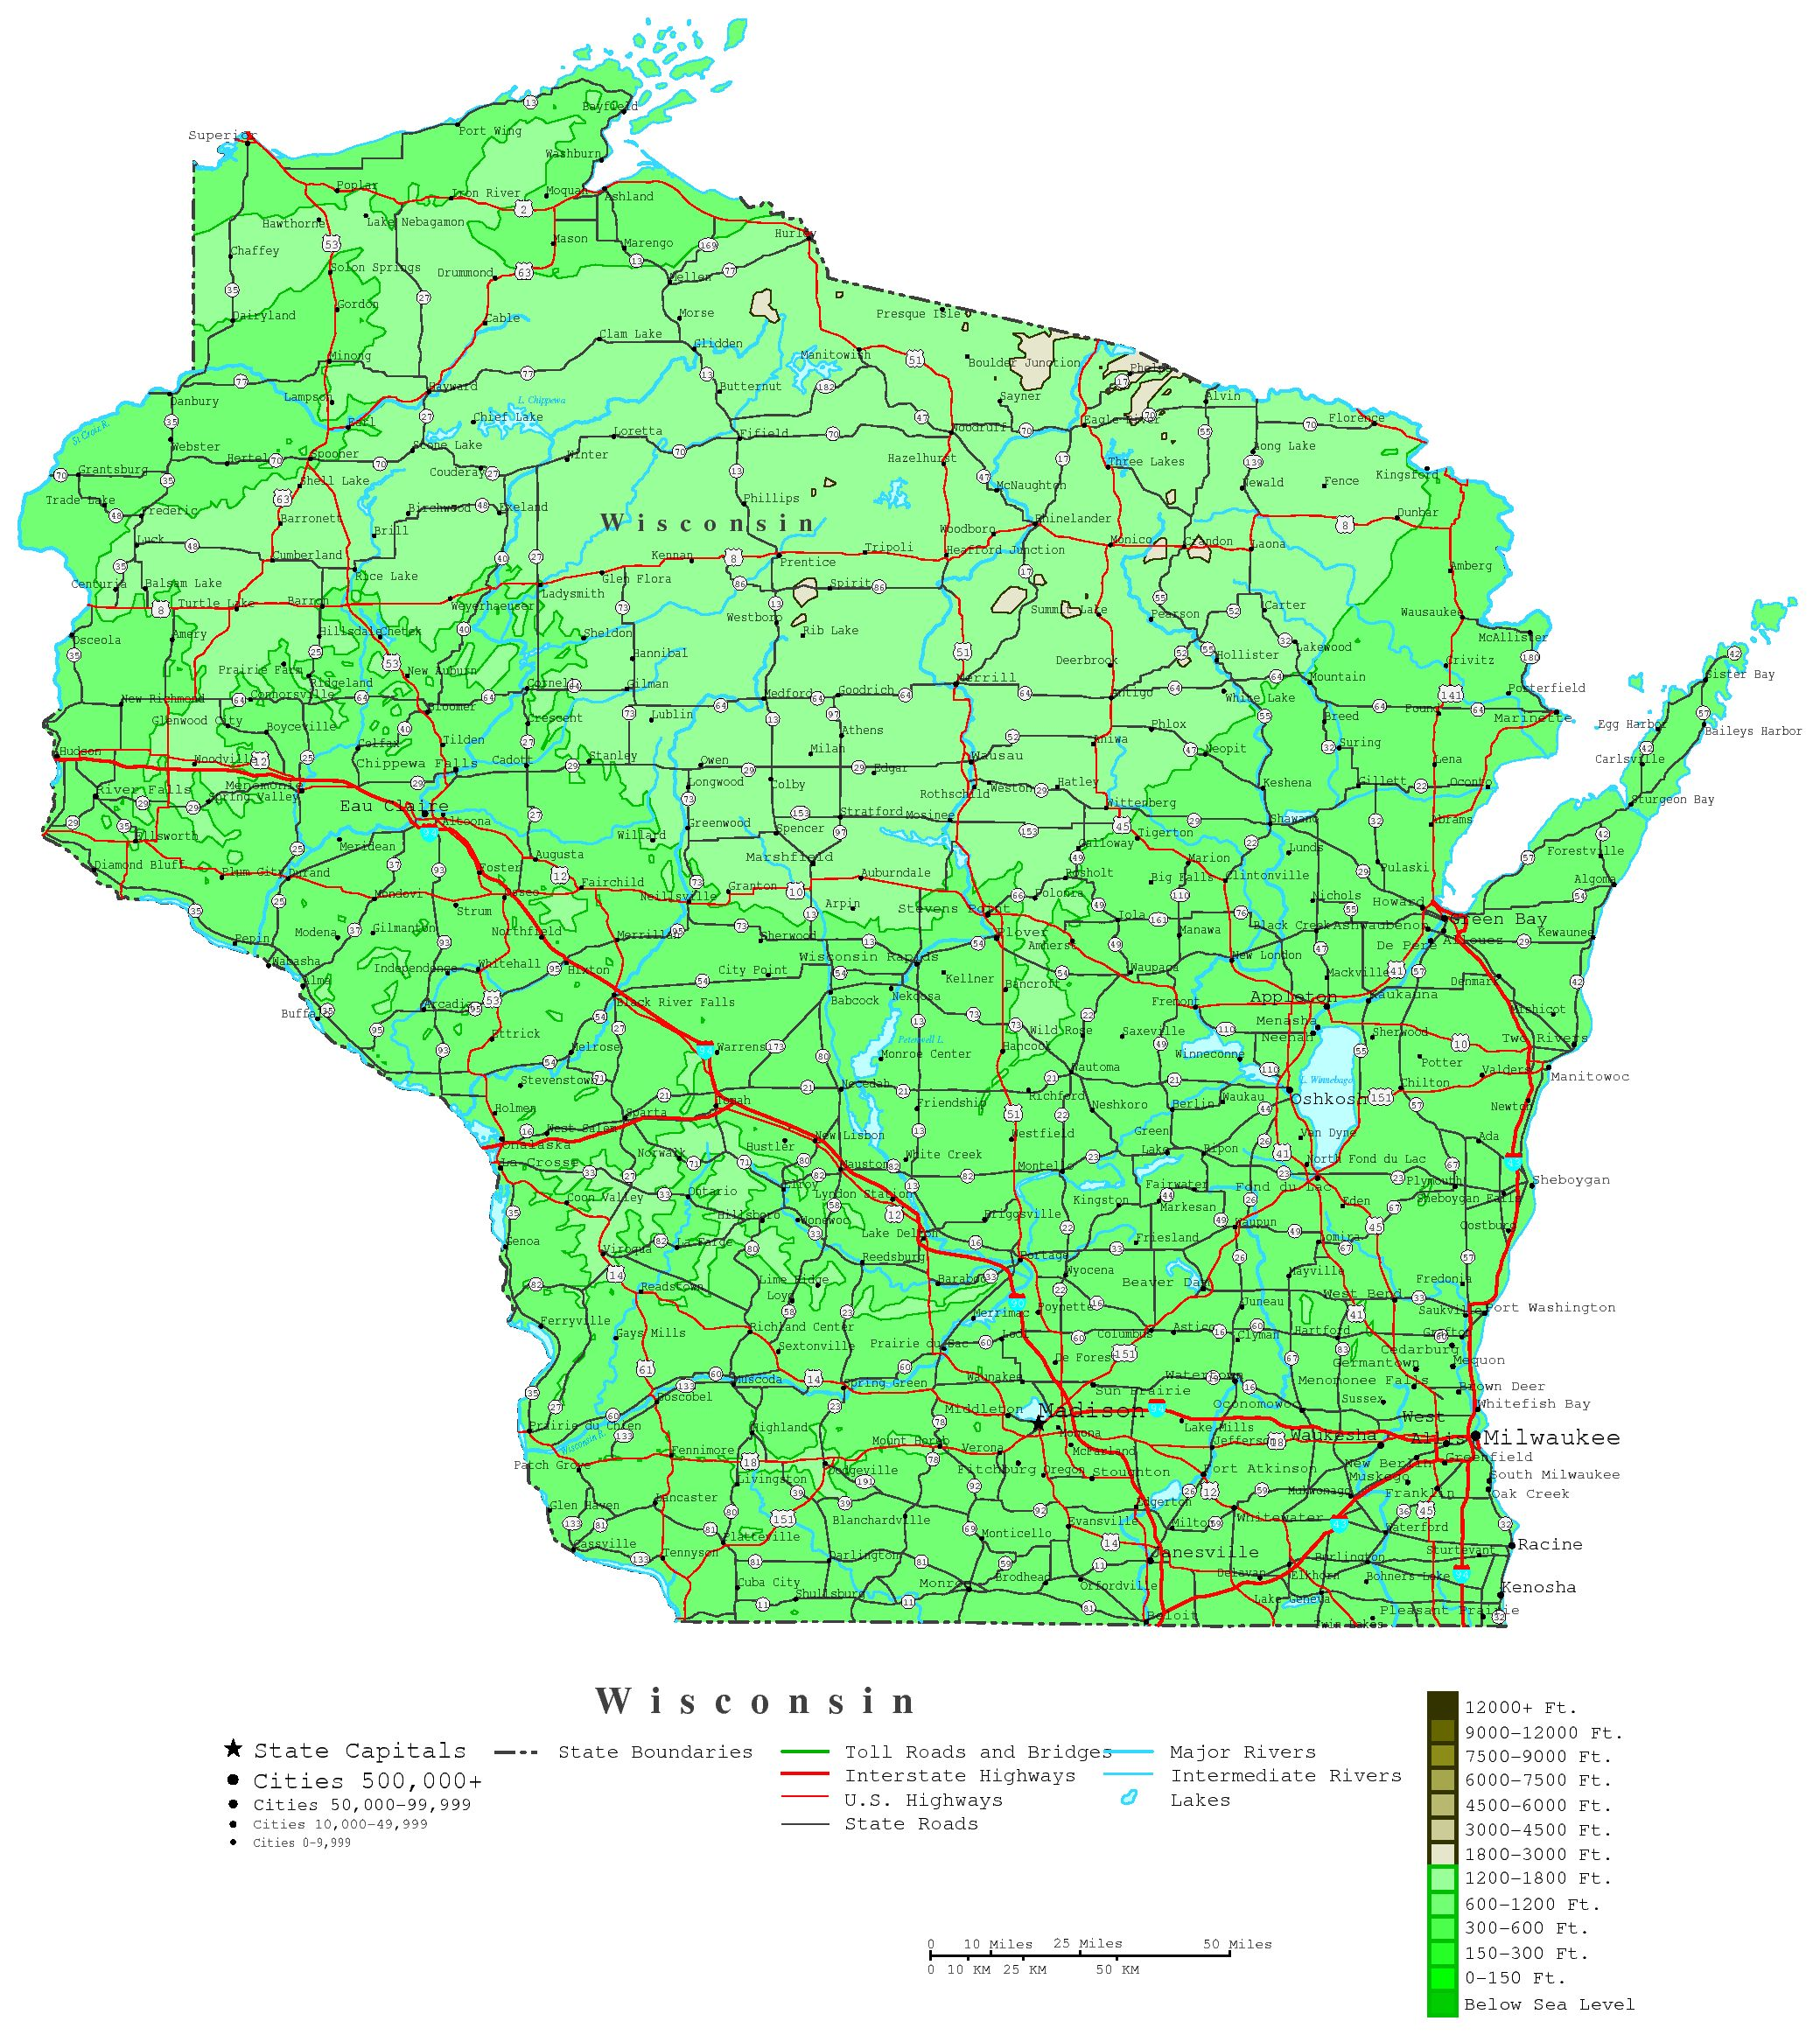 Wisconsin Contour Map - Wisconsin on the us map